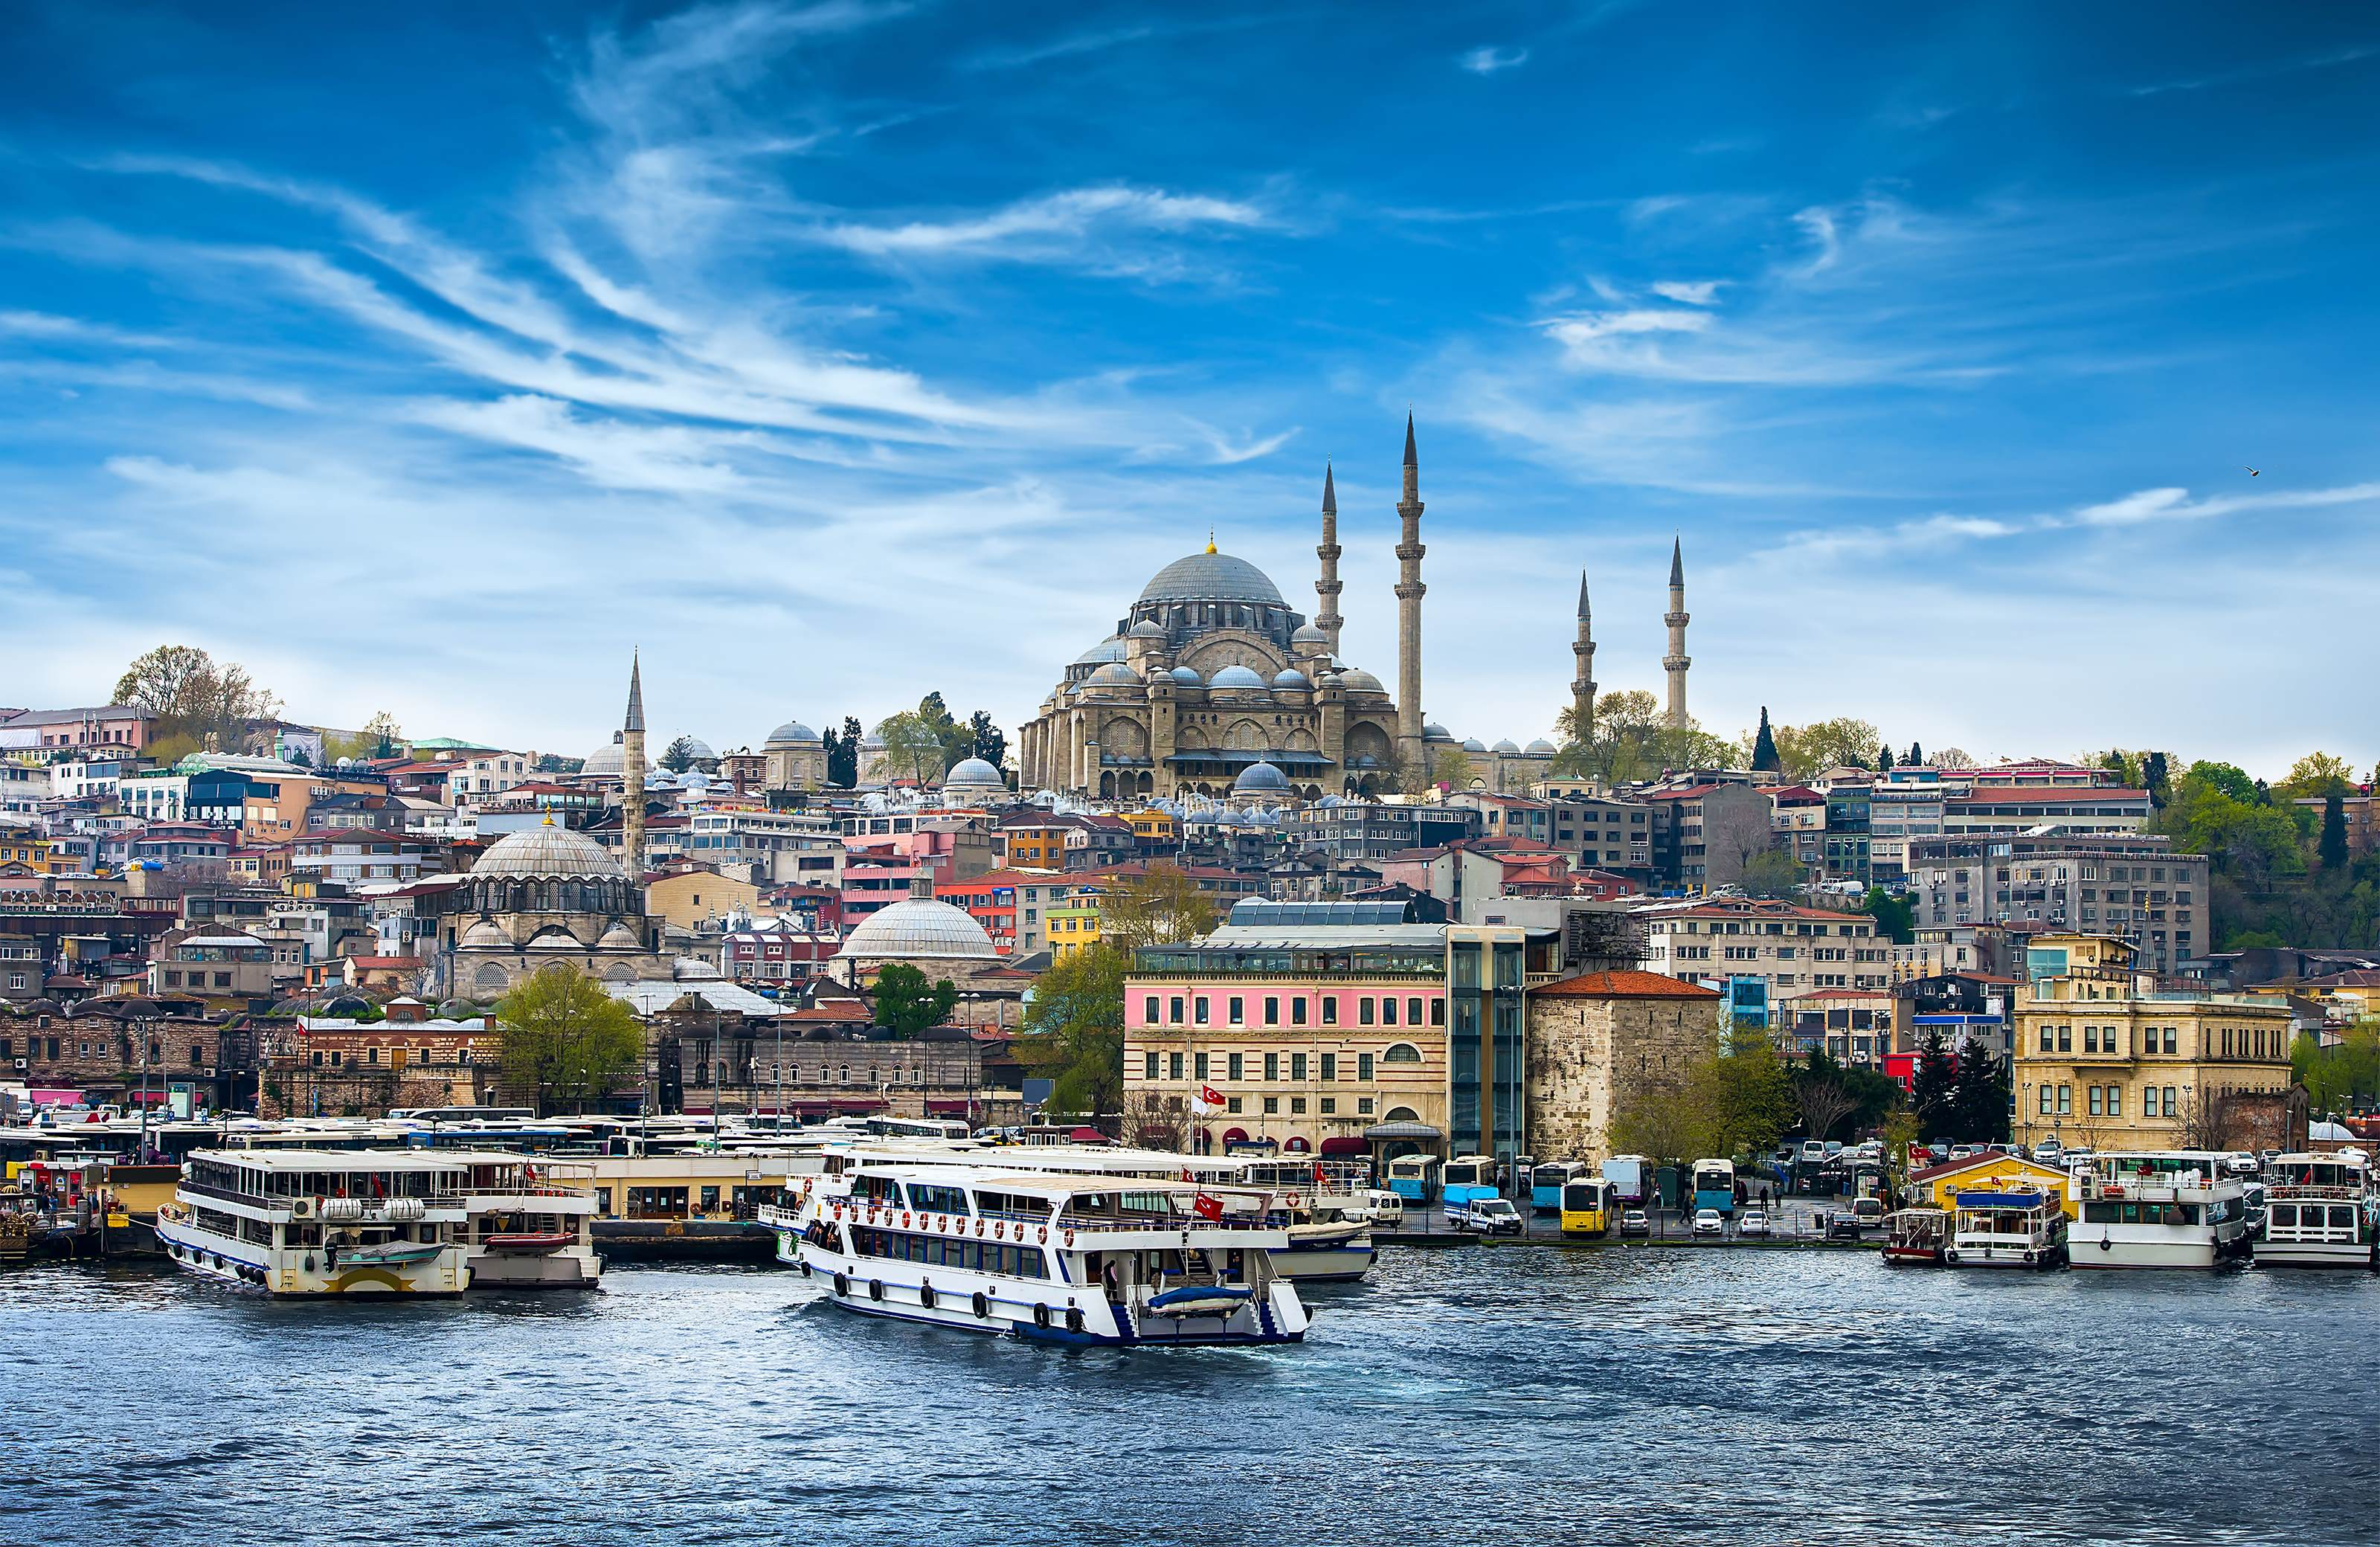 Europe, Africa and Asia Destinations on Offer with Eid Al